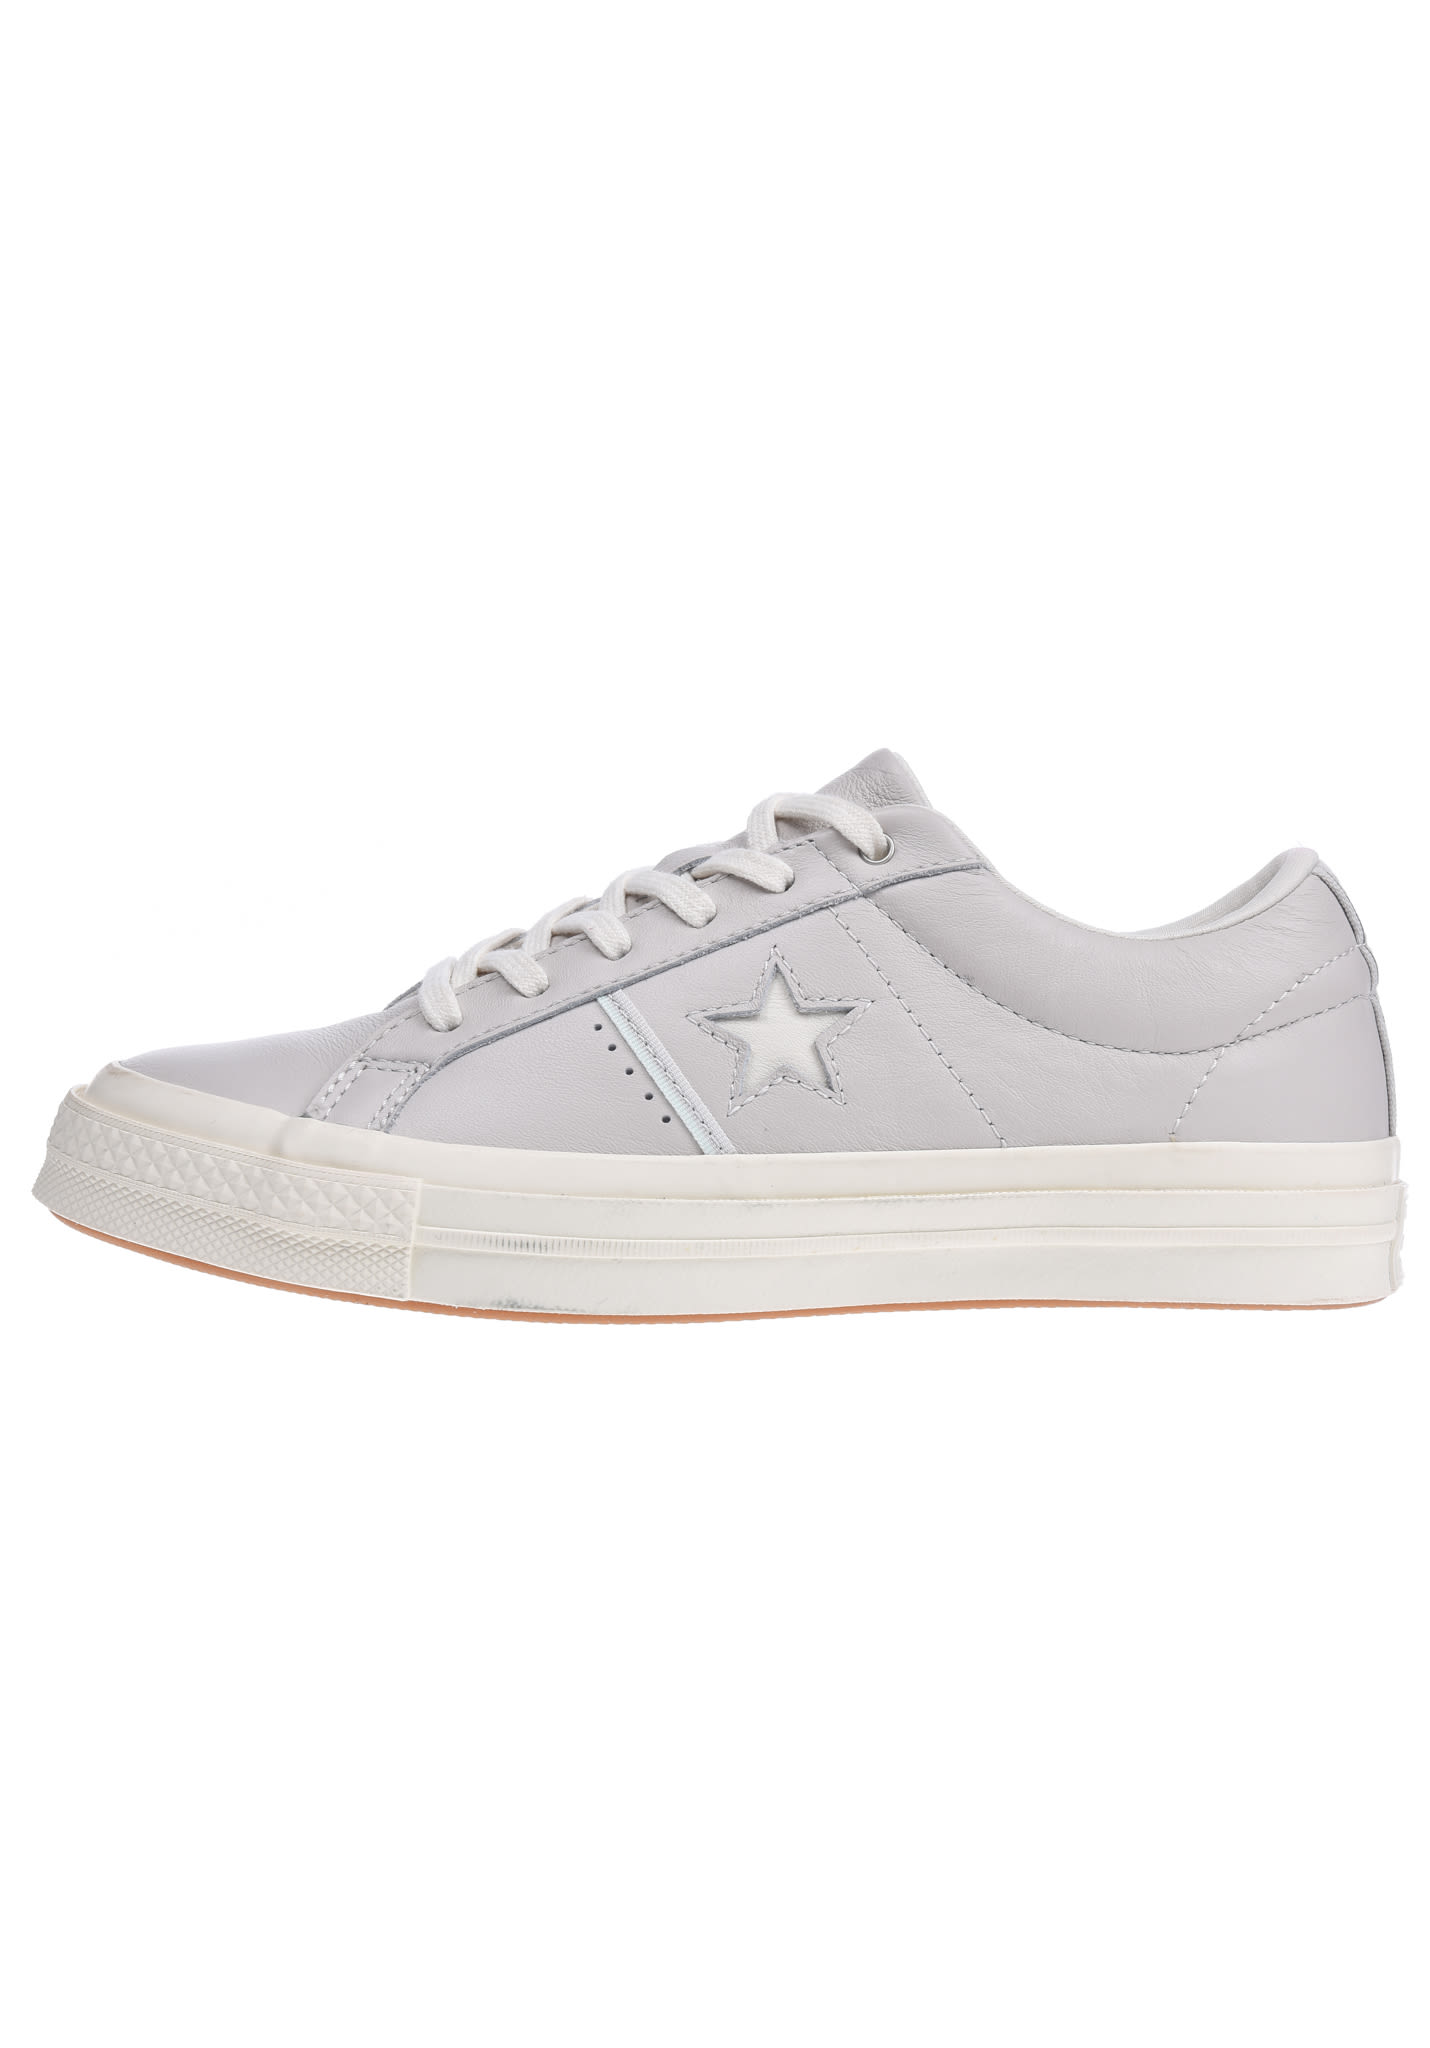 Converse One Star OX - Sneakers - Grey - Planet Sports 521ec2d5c